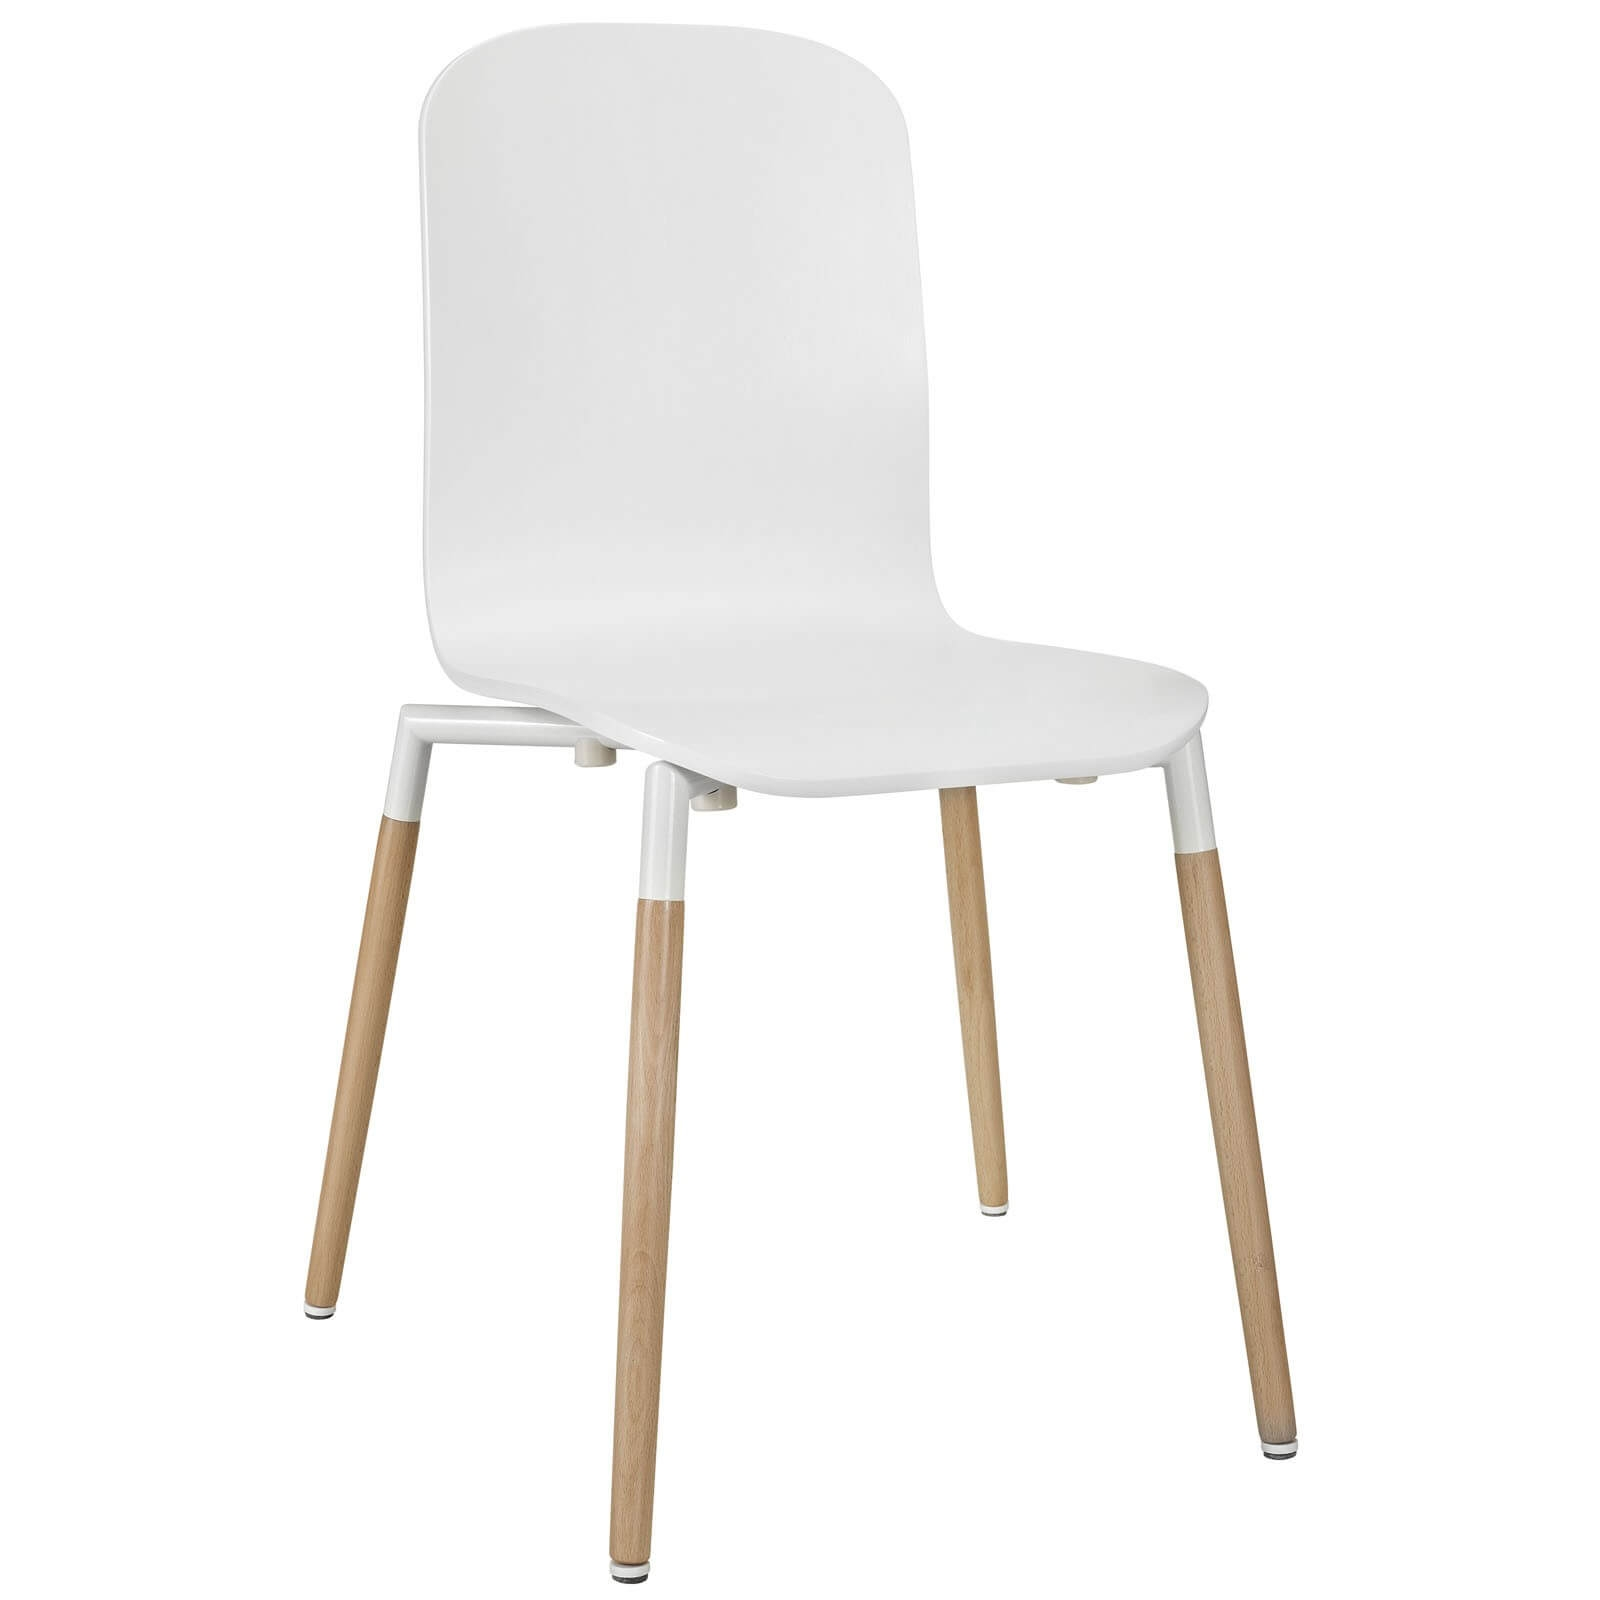 Restaurant chairs CUB EEI 1054 WHI MOD